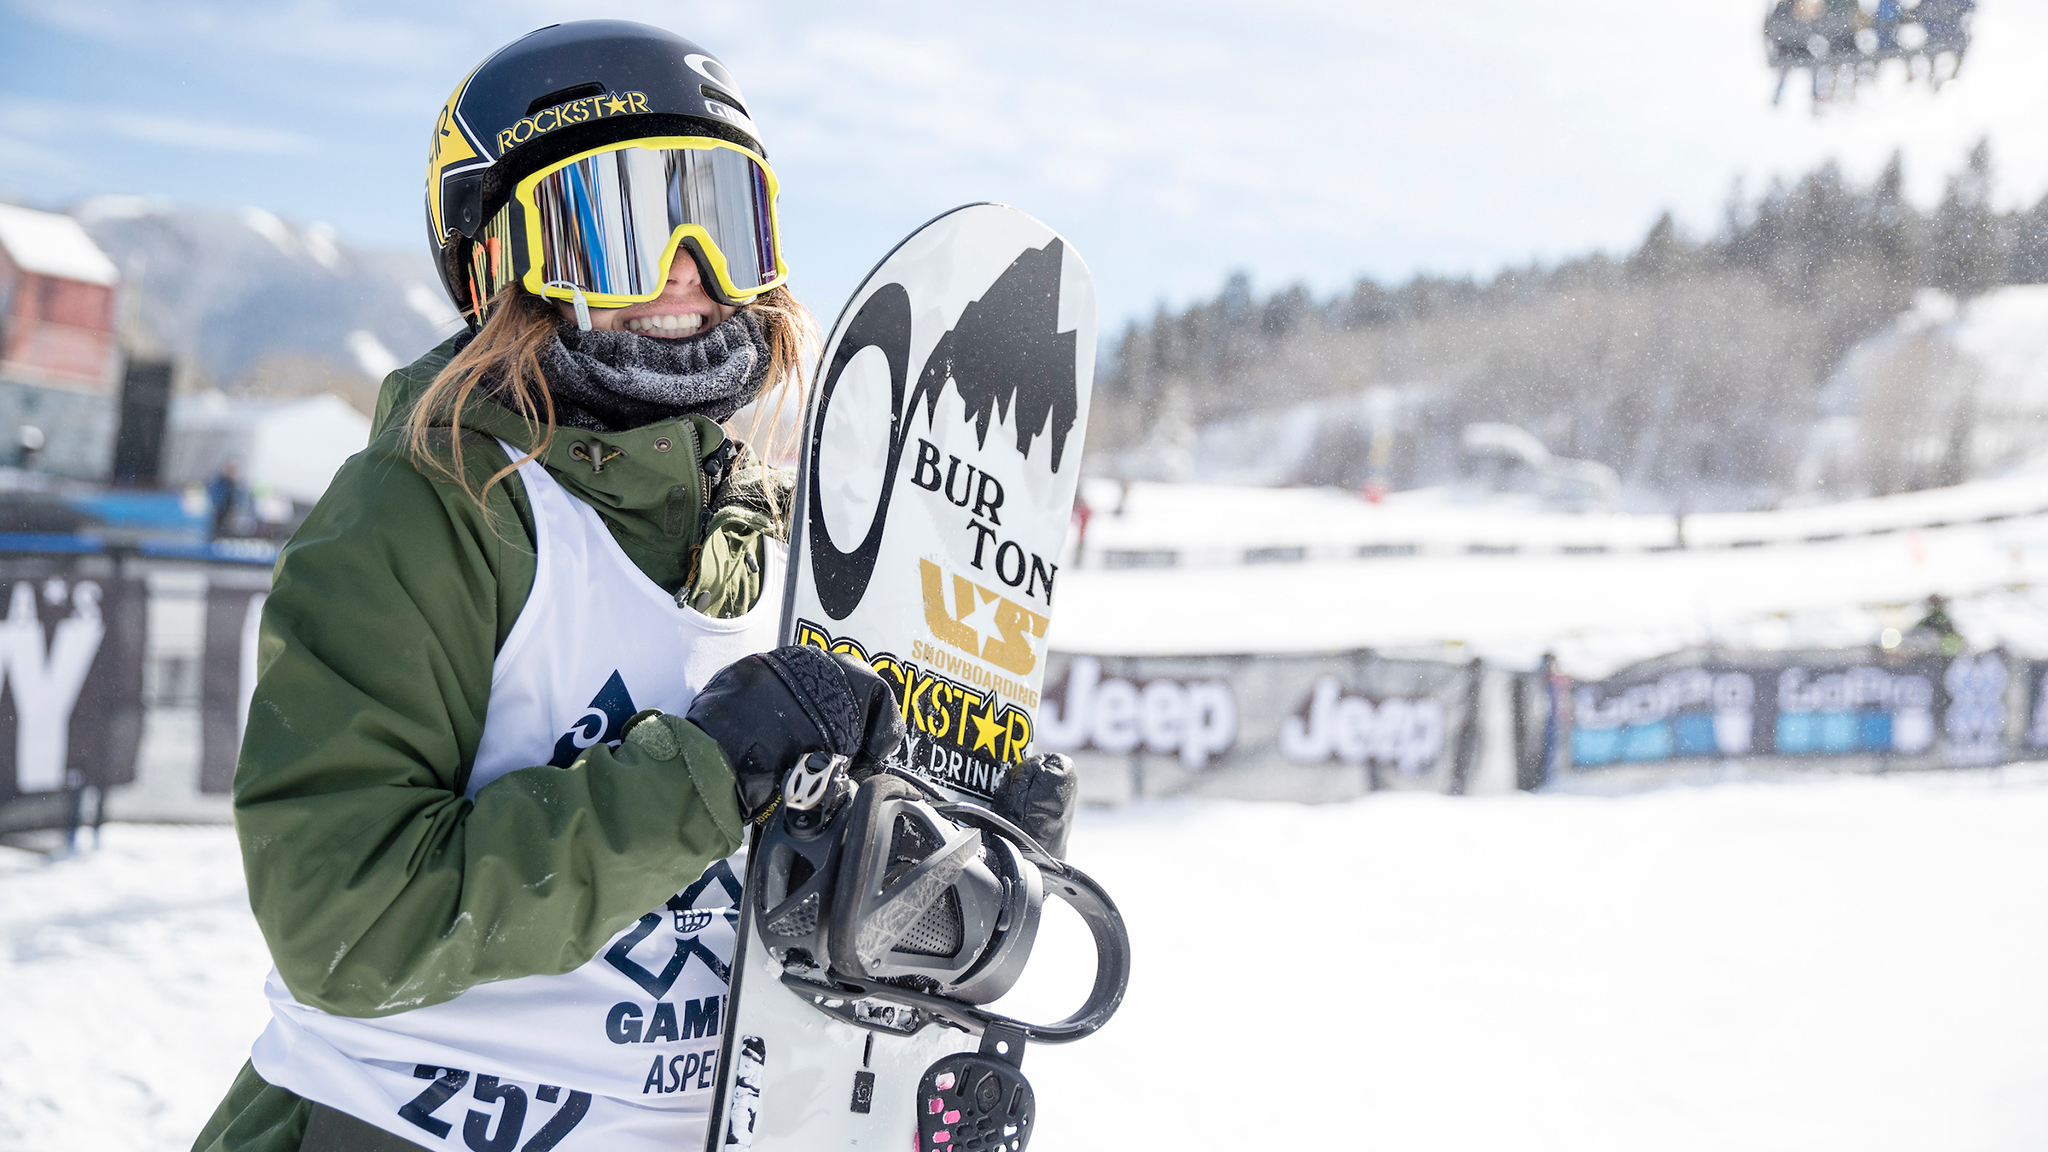 Yung Hails shocked everyone (including herself) by stomping the first-ever double cork by a woman off an X Games jump.